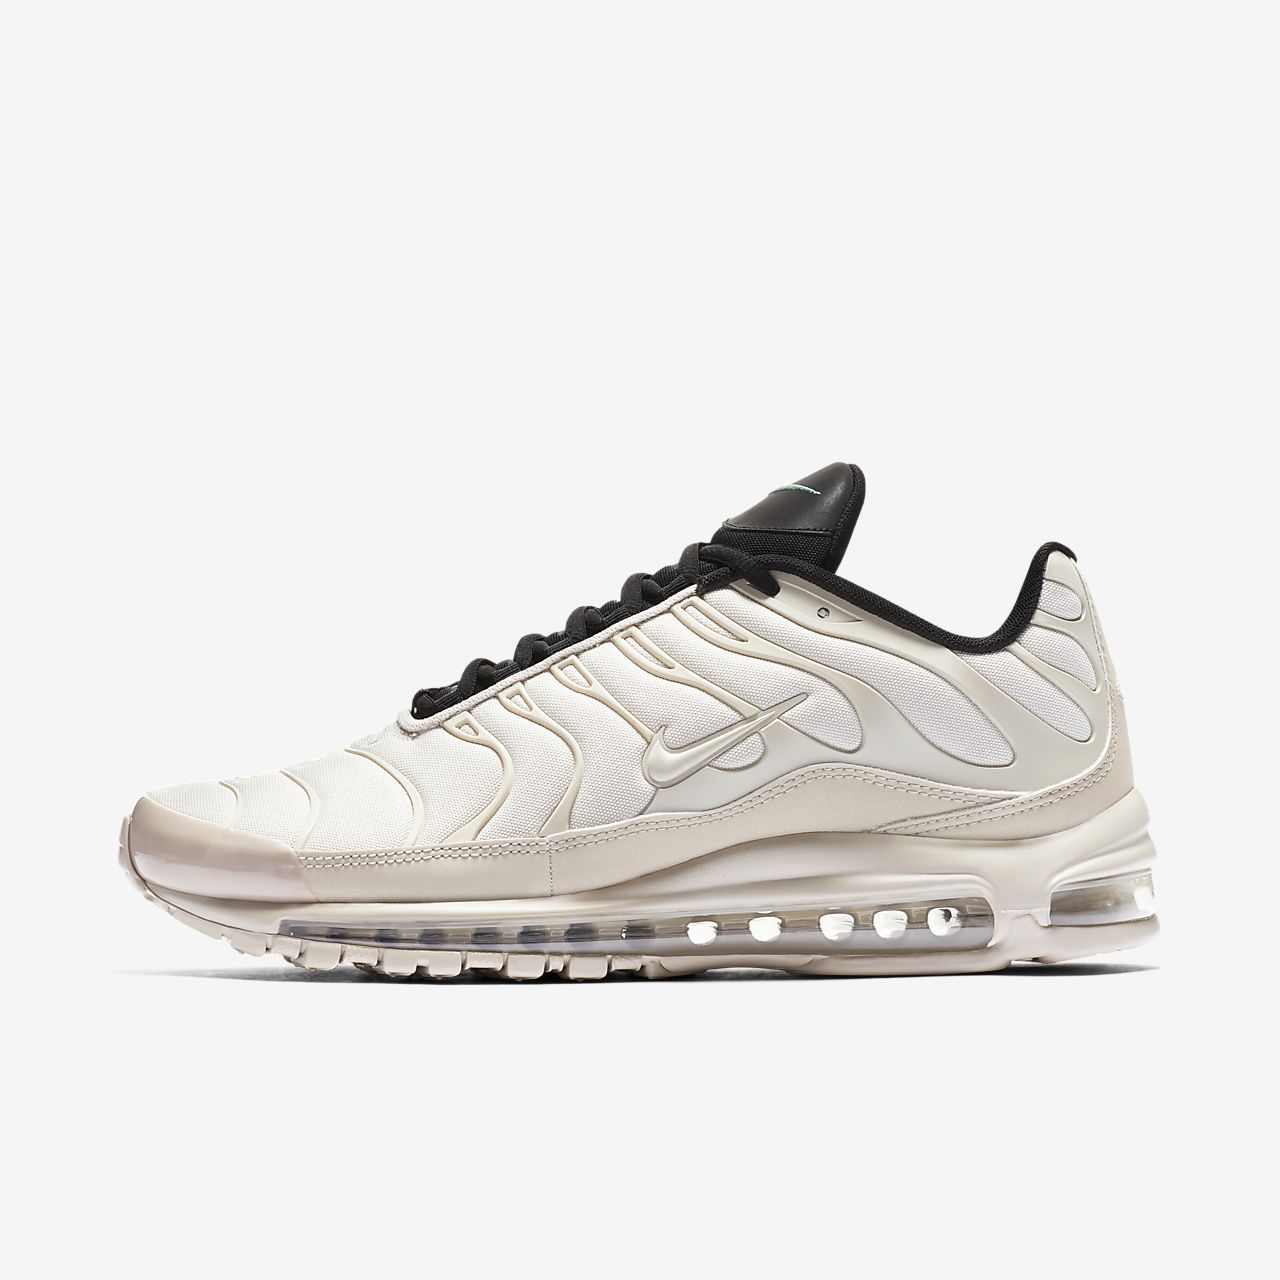 los angeles e2dd6 60c7c Low Resolution Nike Air Max 97 Plus Men s Shoe Nike Air Max 97 Plus Men s  Shoe